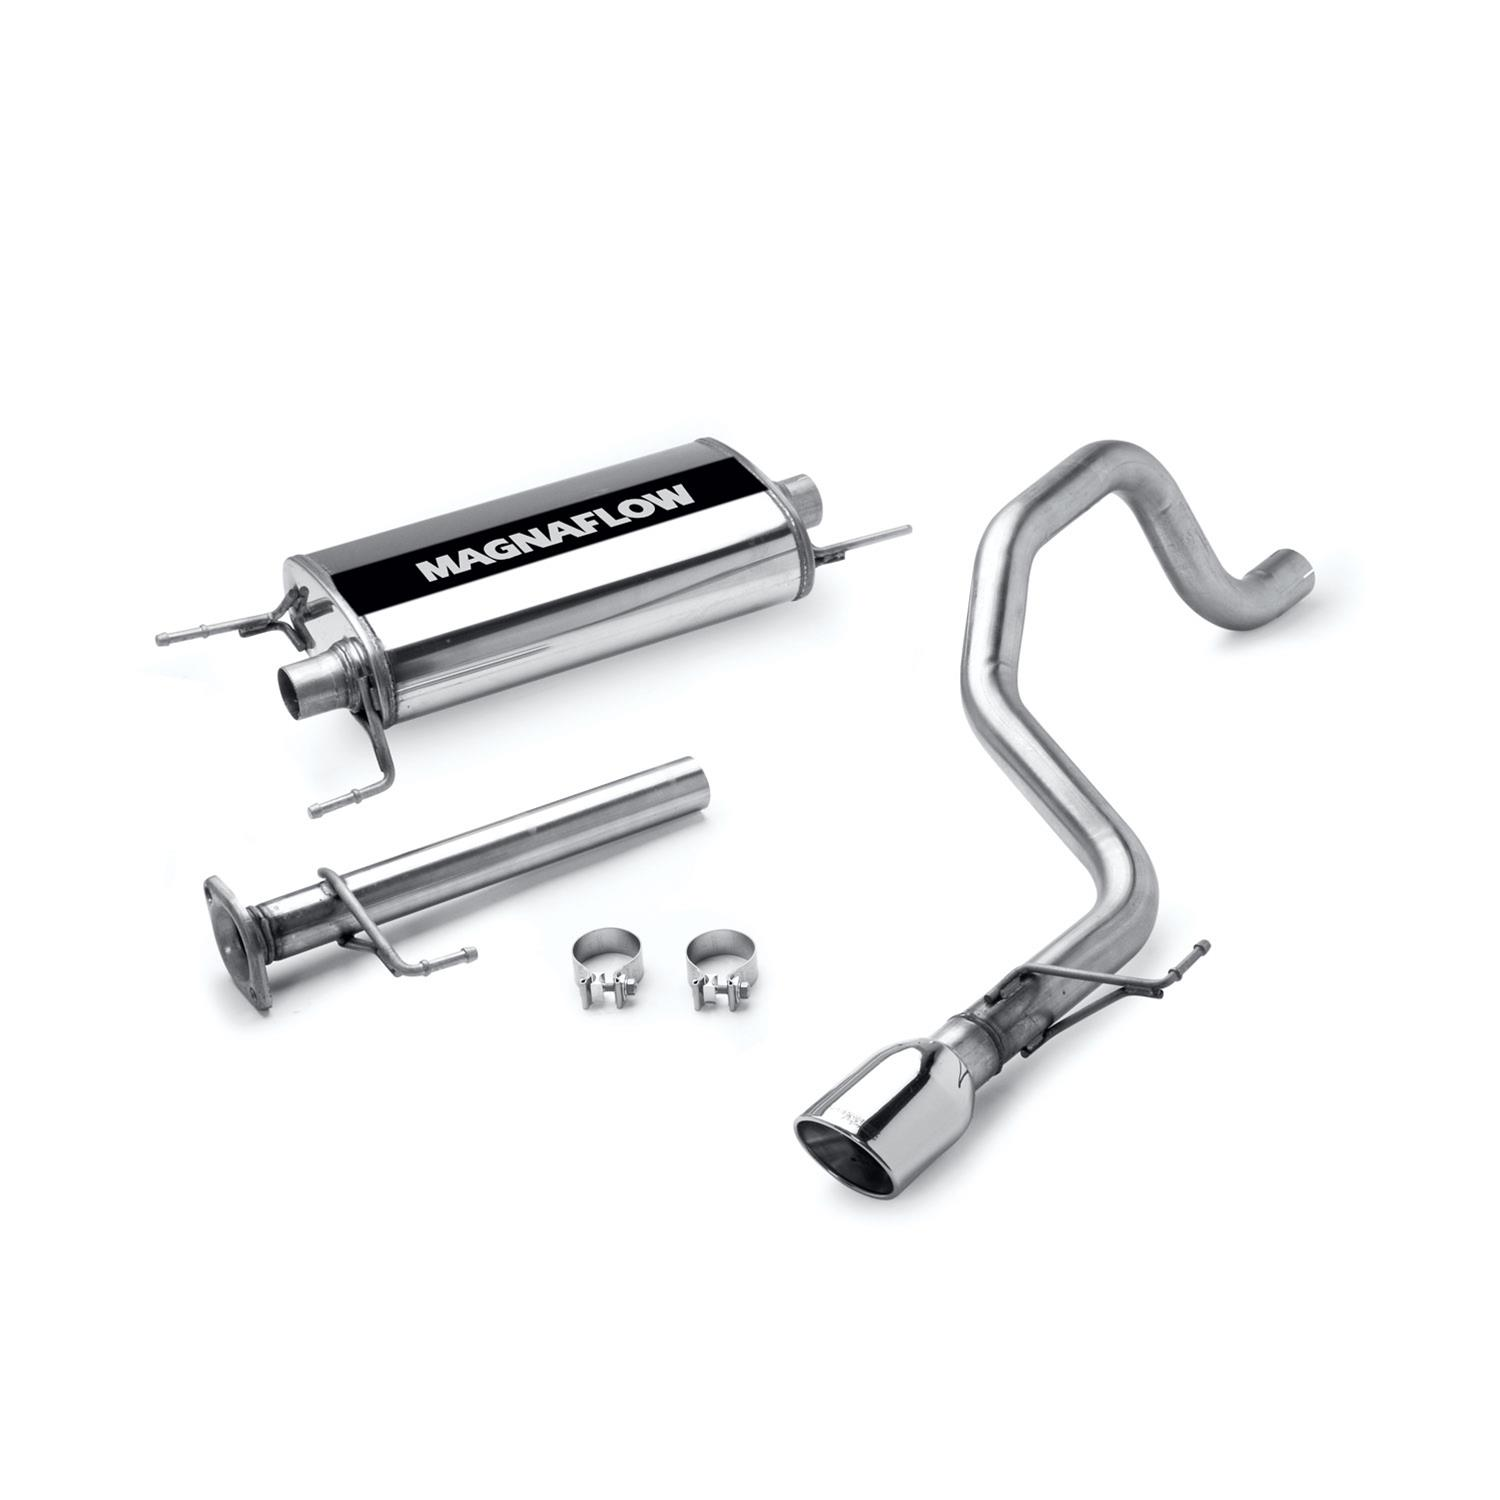 Exhaust Magnaflow Cat Back Stainless Steel And Aluminized